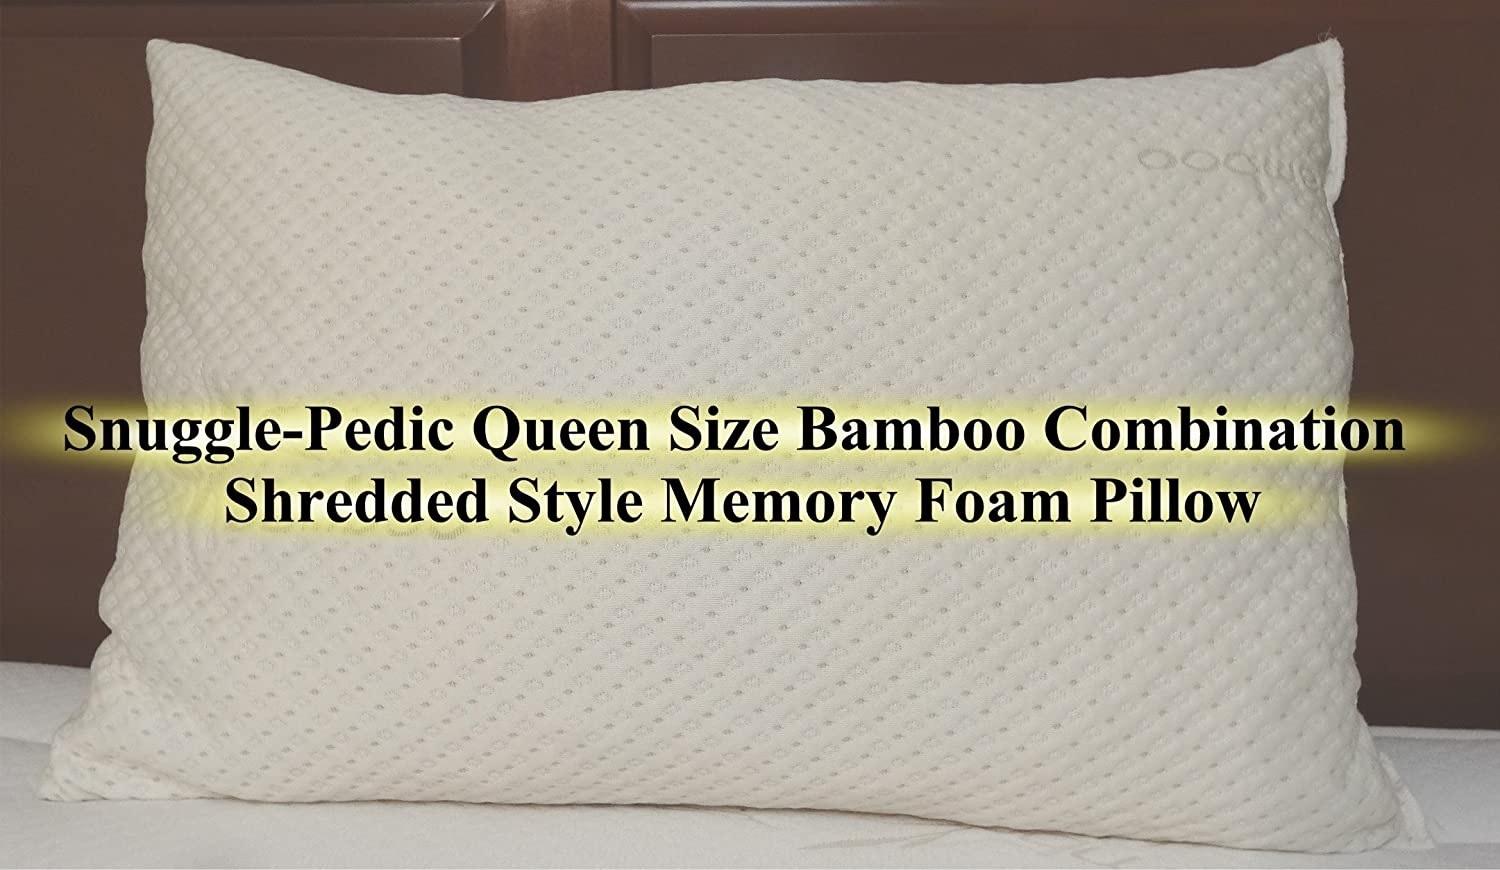 Bamboo Combination Shredded Style Memory Foam Pillow With Kool-Flow Micro-Vented Cover